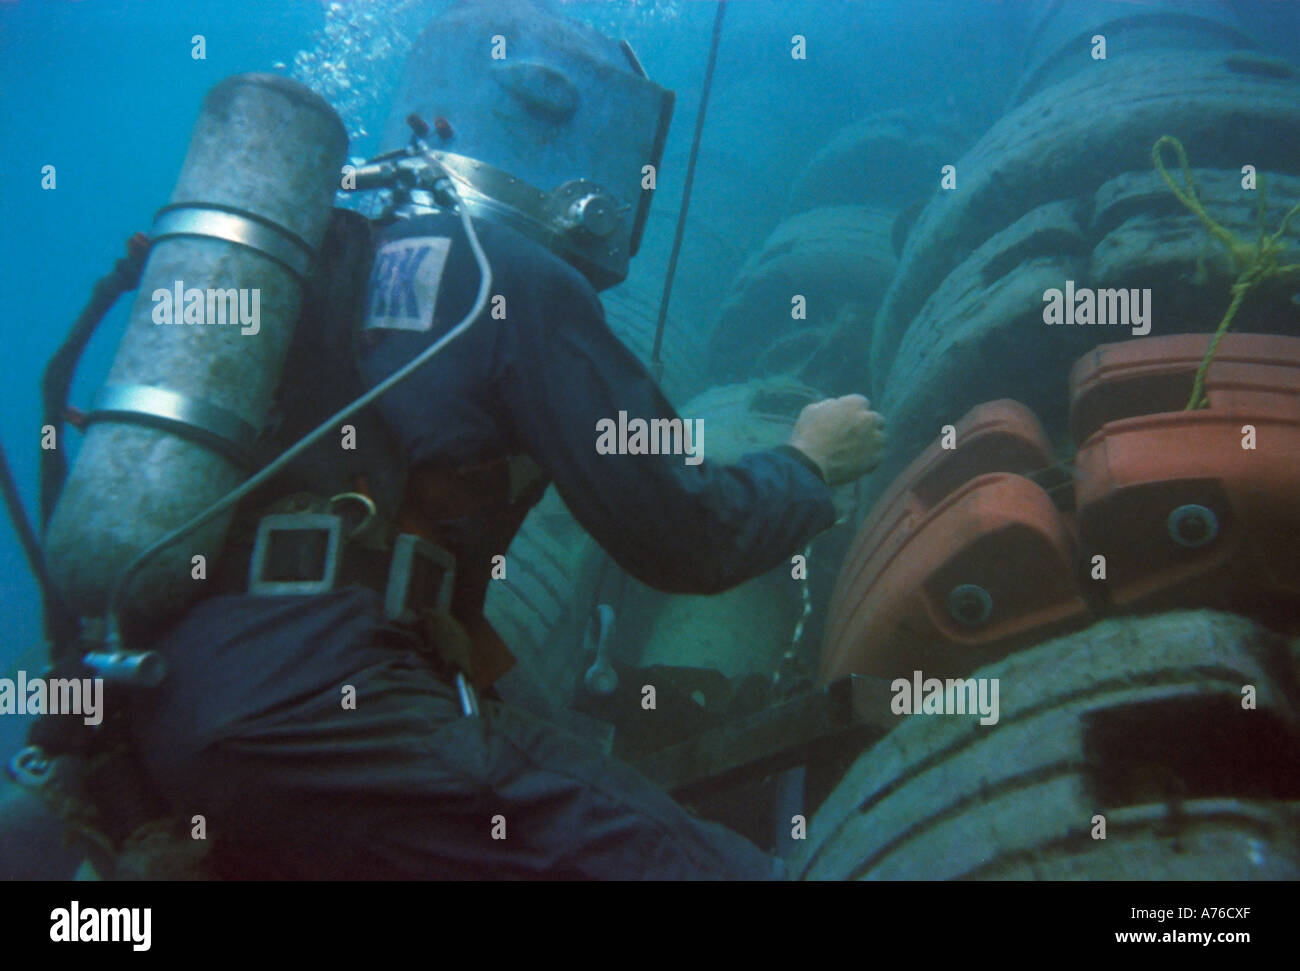 A commercial diver working on an SBM pipe line having just changed one of the flotation devices. Stock Photo